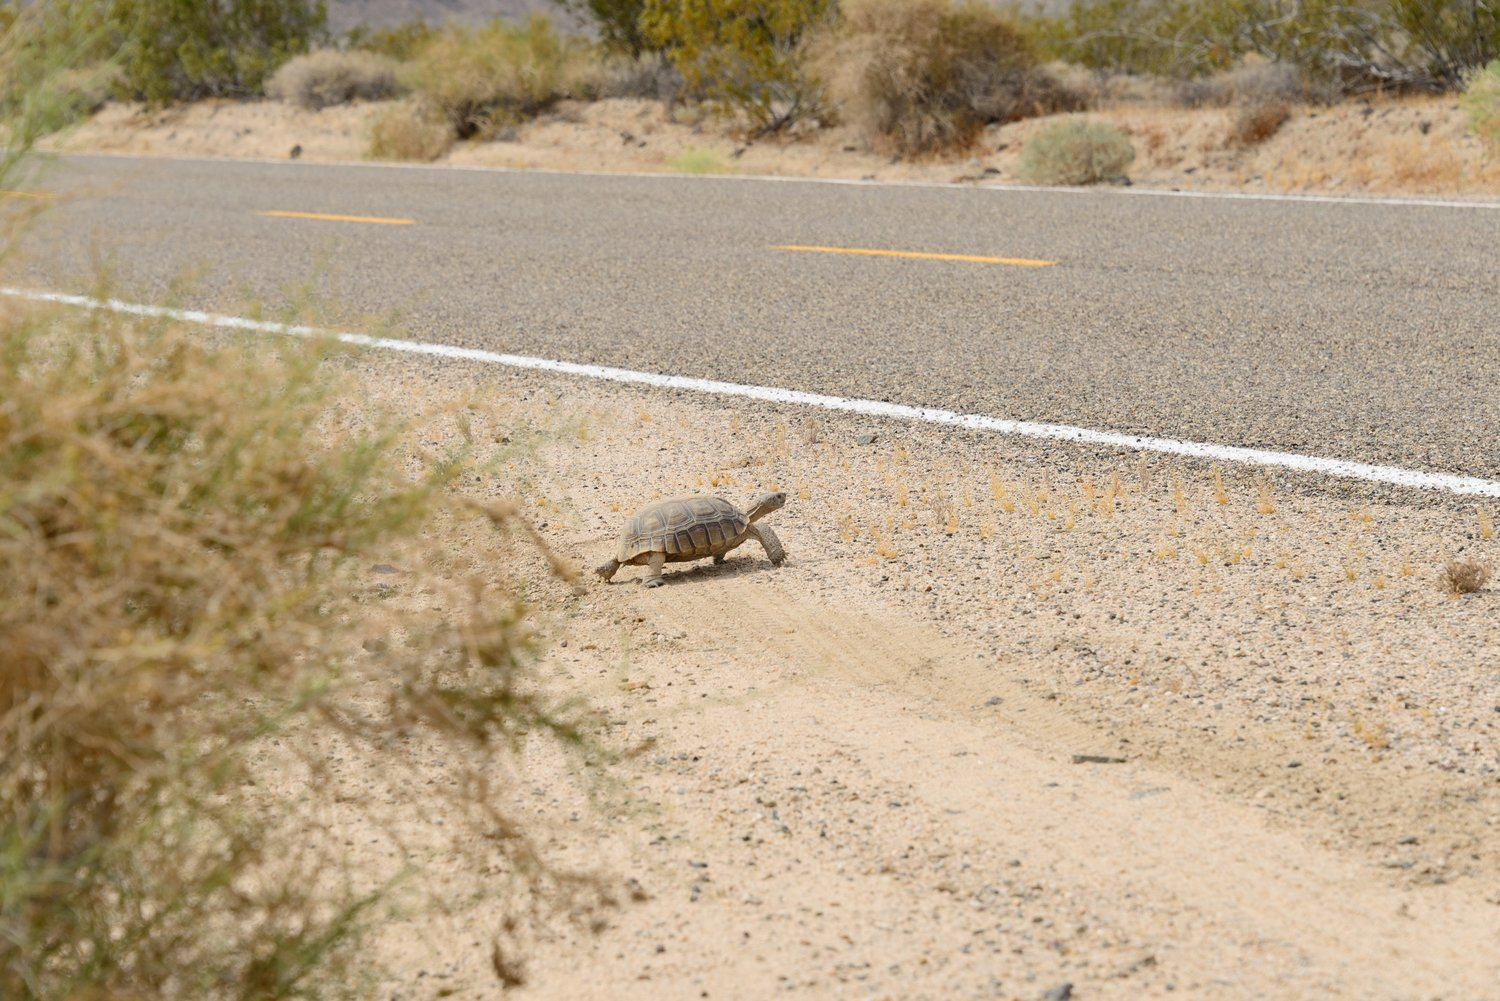 If you're going 75 MPH, you're not in the right mindset to enjoy the desert.  Slow down.  You'll enjoy the Preserve, and you'll pose less of a hazard to wildlife.